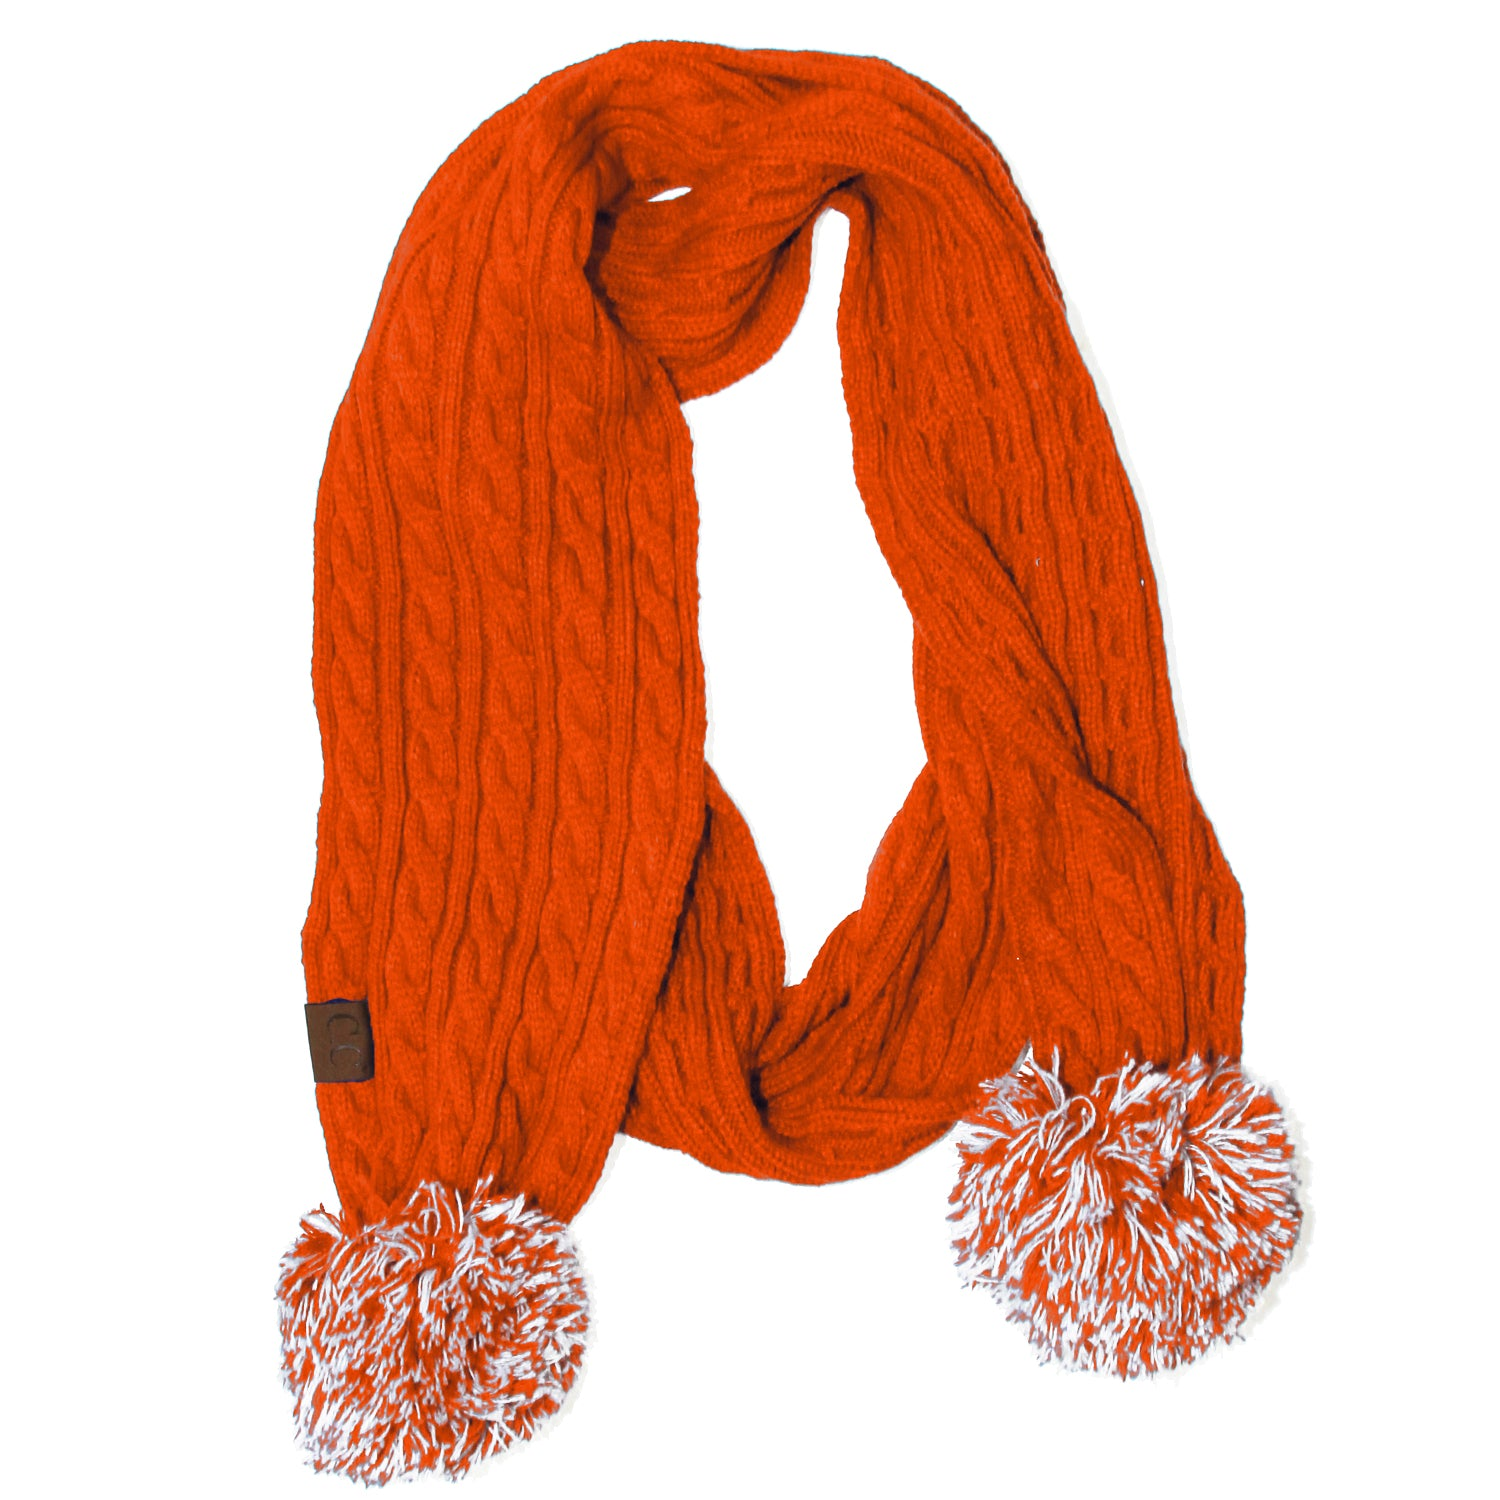 SK-56-9 Dark Orange Team Pom-Pom Scarf